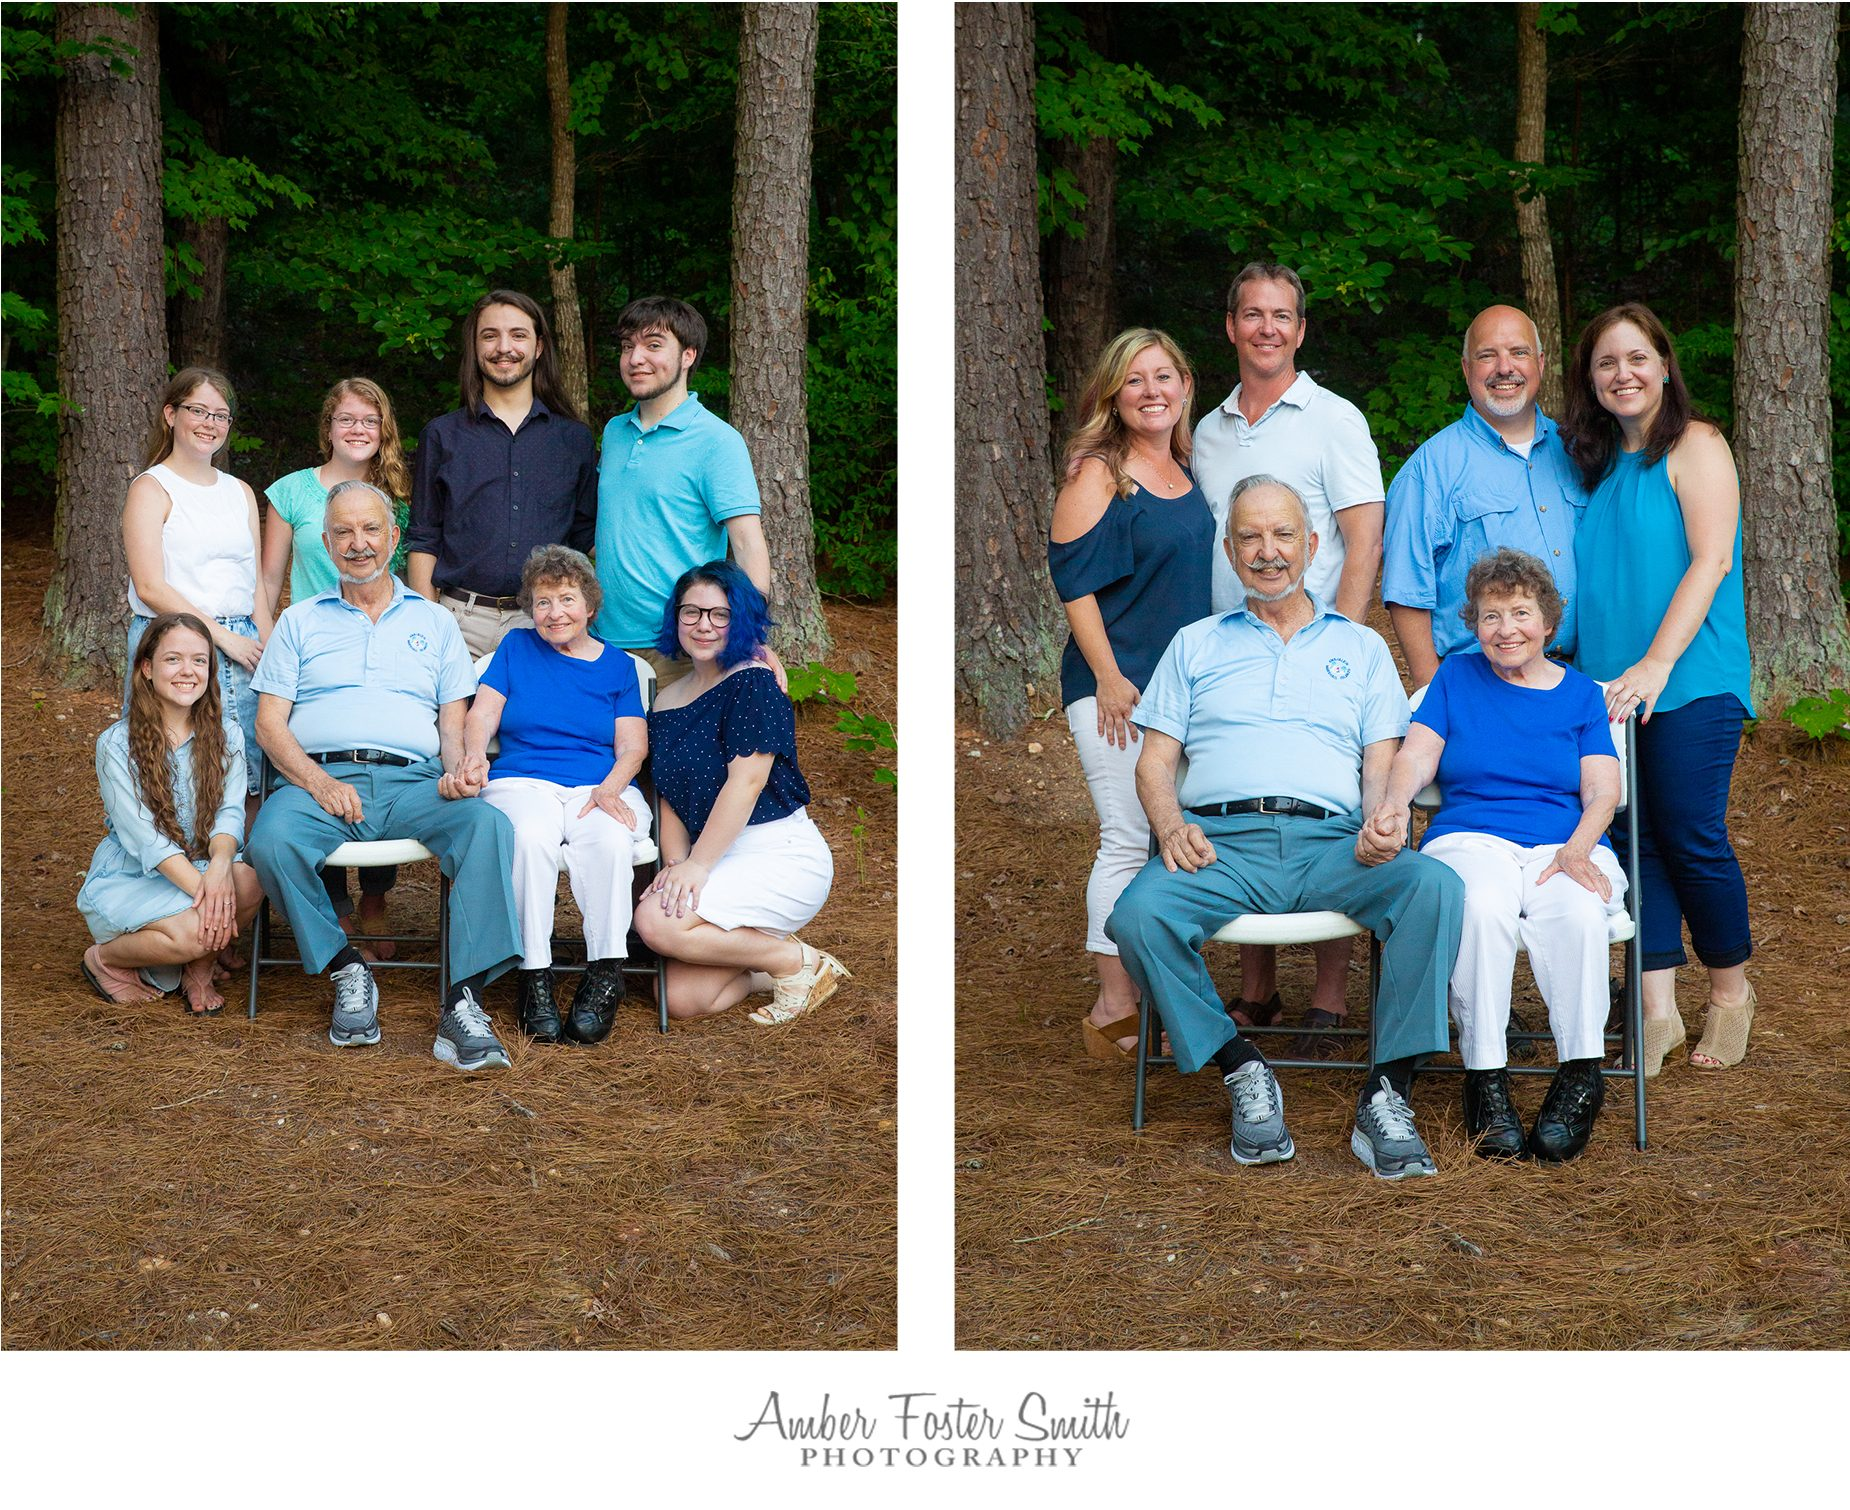 Amber Foster Smith Photography - Holly Springs Family Photography